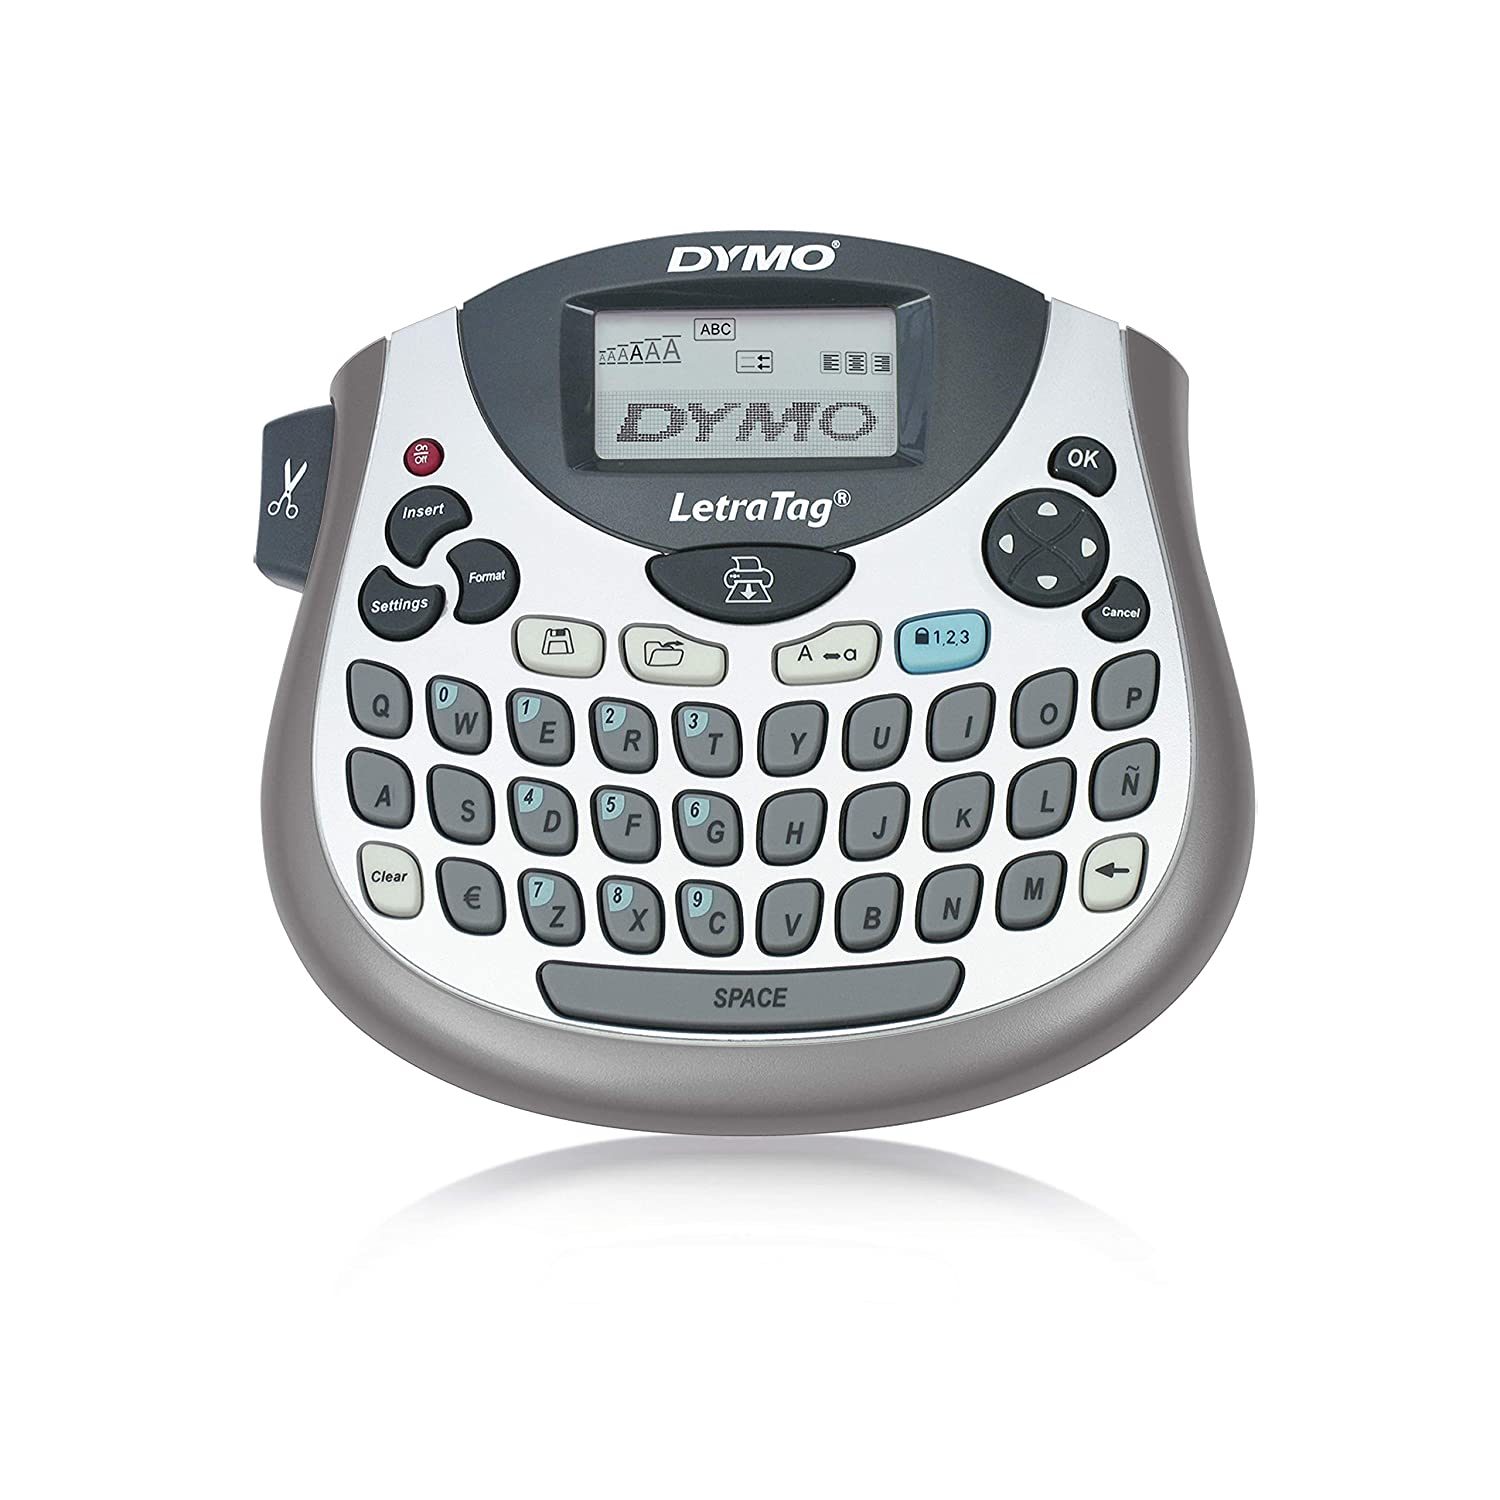 Dymo Letratag LT-100T Qwerty Label Maker Plus Tape (Nordic Text on Packaging) Newell Rubbermaid S0758390